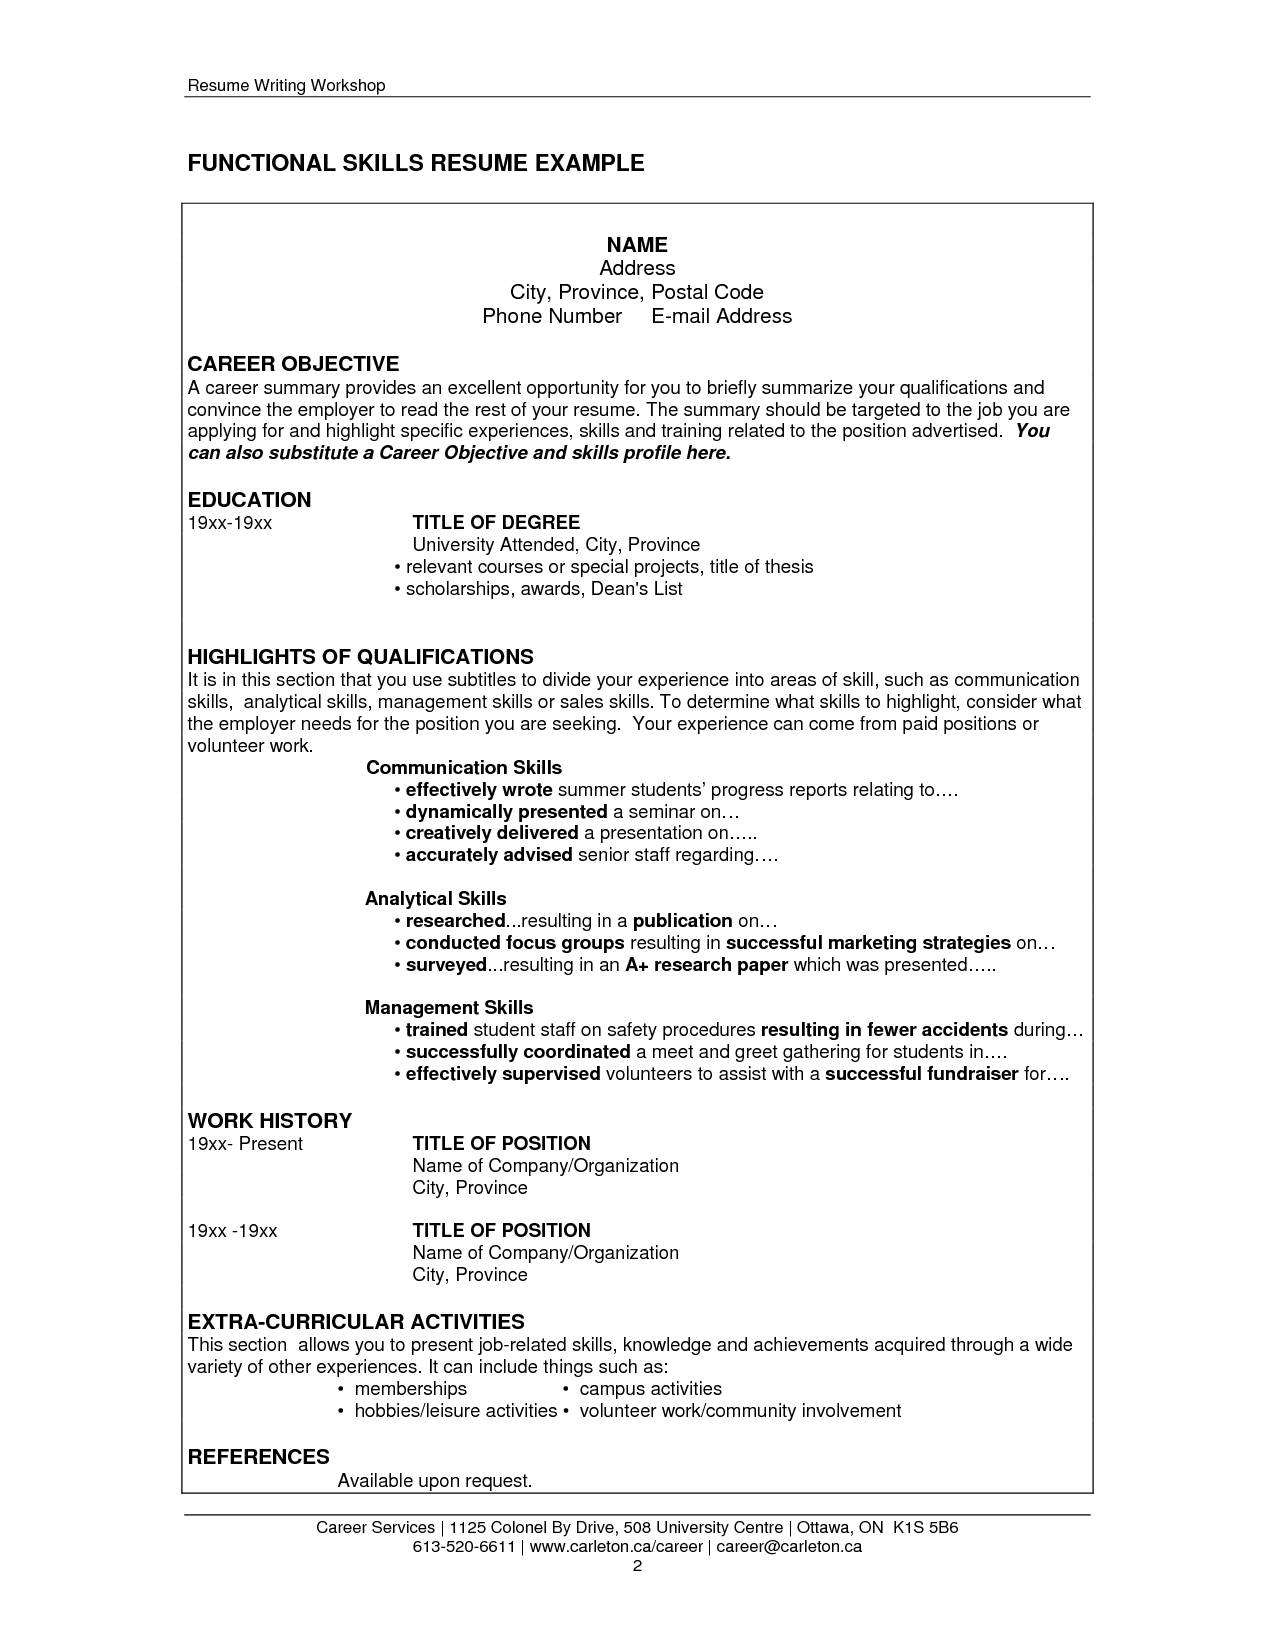 Job resume communication skills for Other skills in resume sample